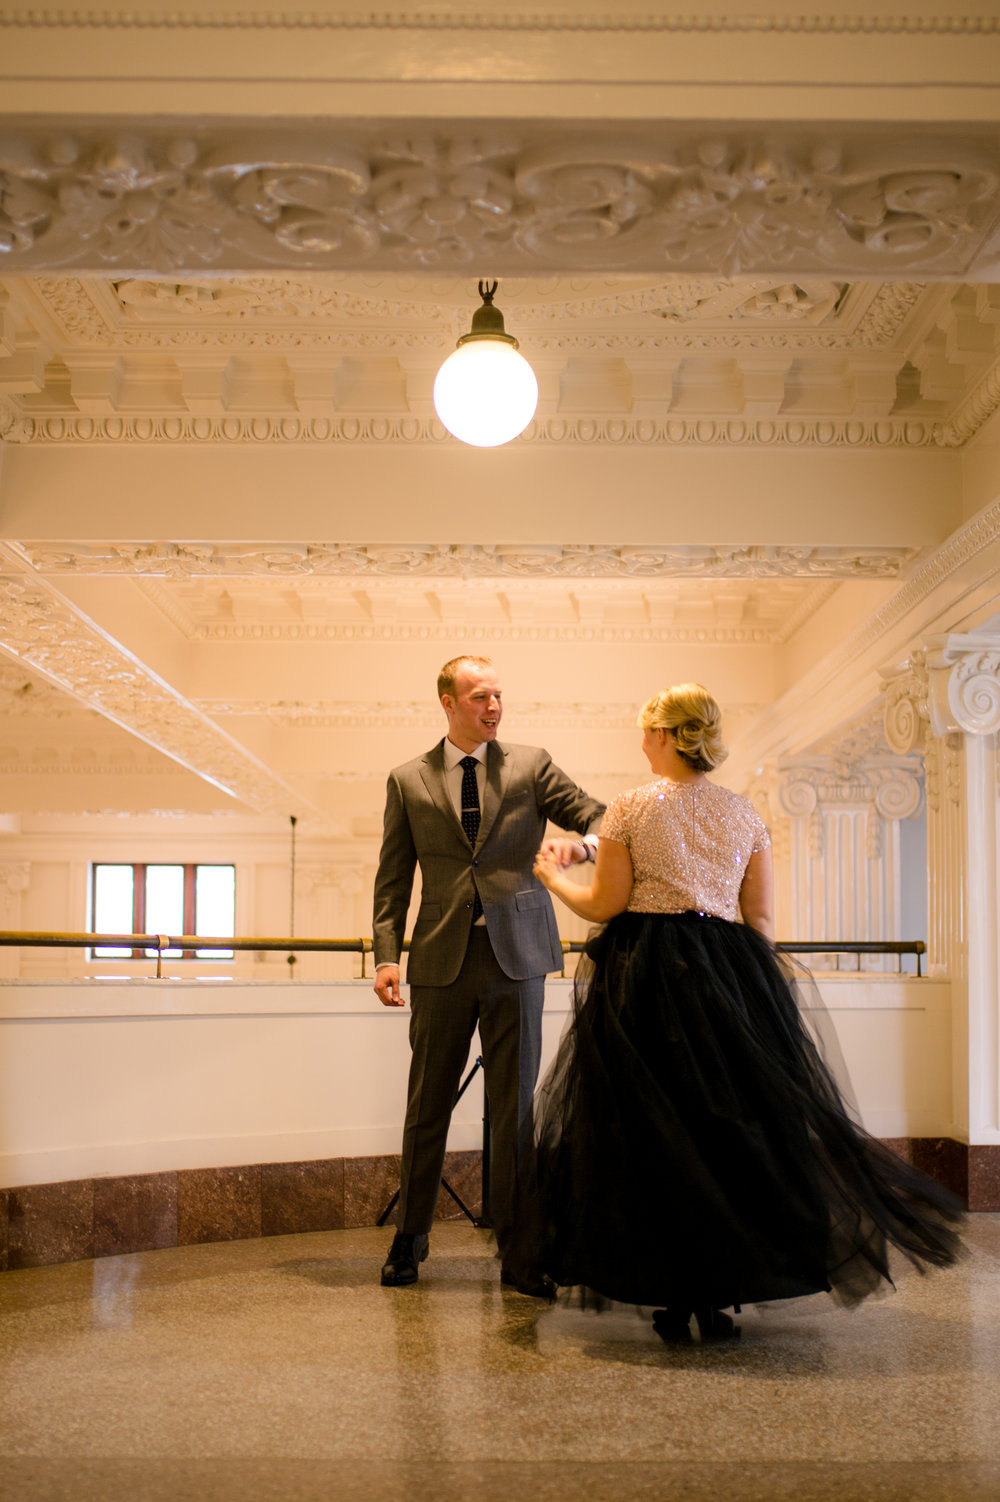 Ballroom Engagement_Urban Engagement_Tulle Skirt Engagement_Montana Wedding Photographer_Kelsey Lane Photography